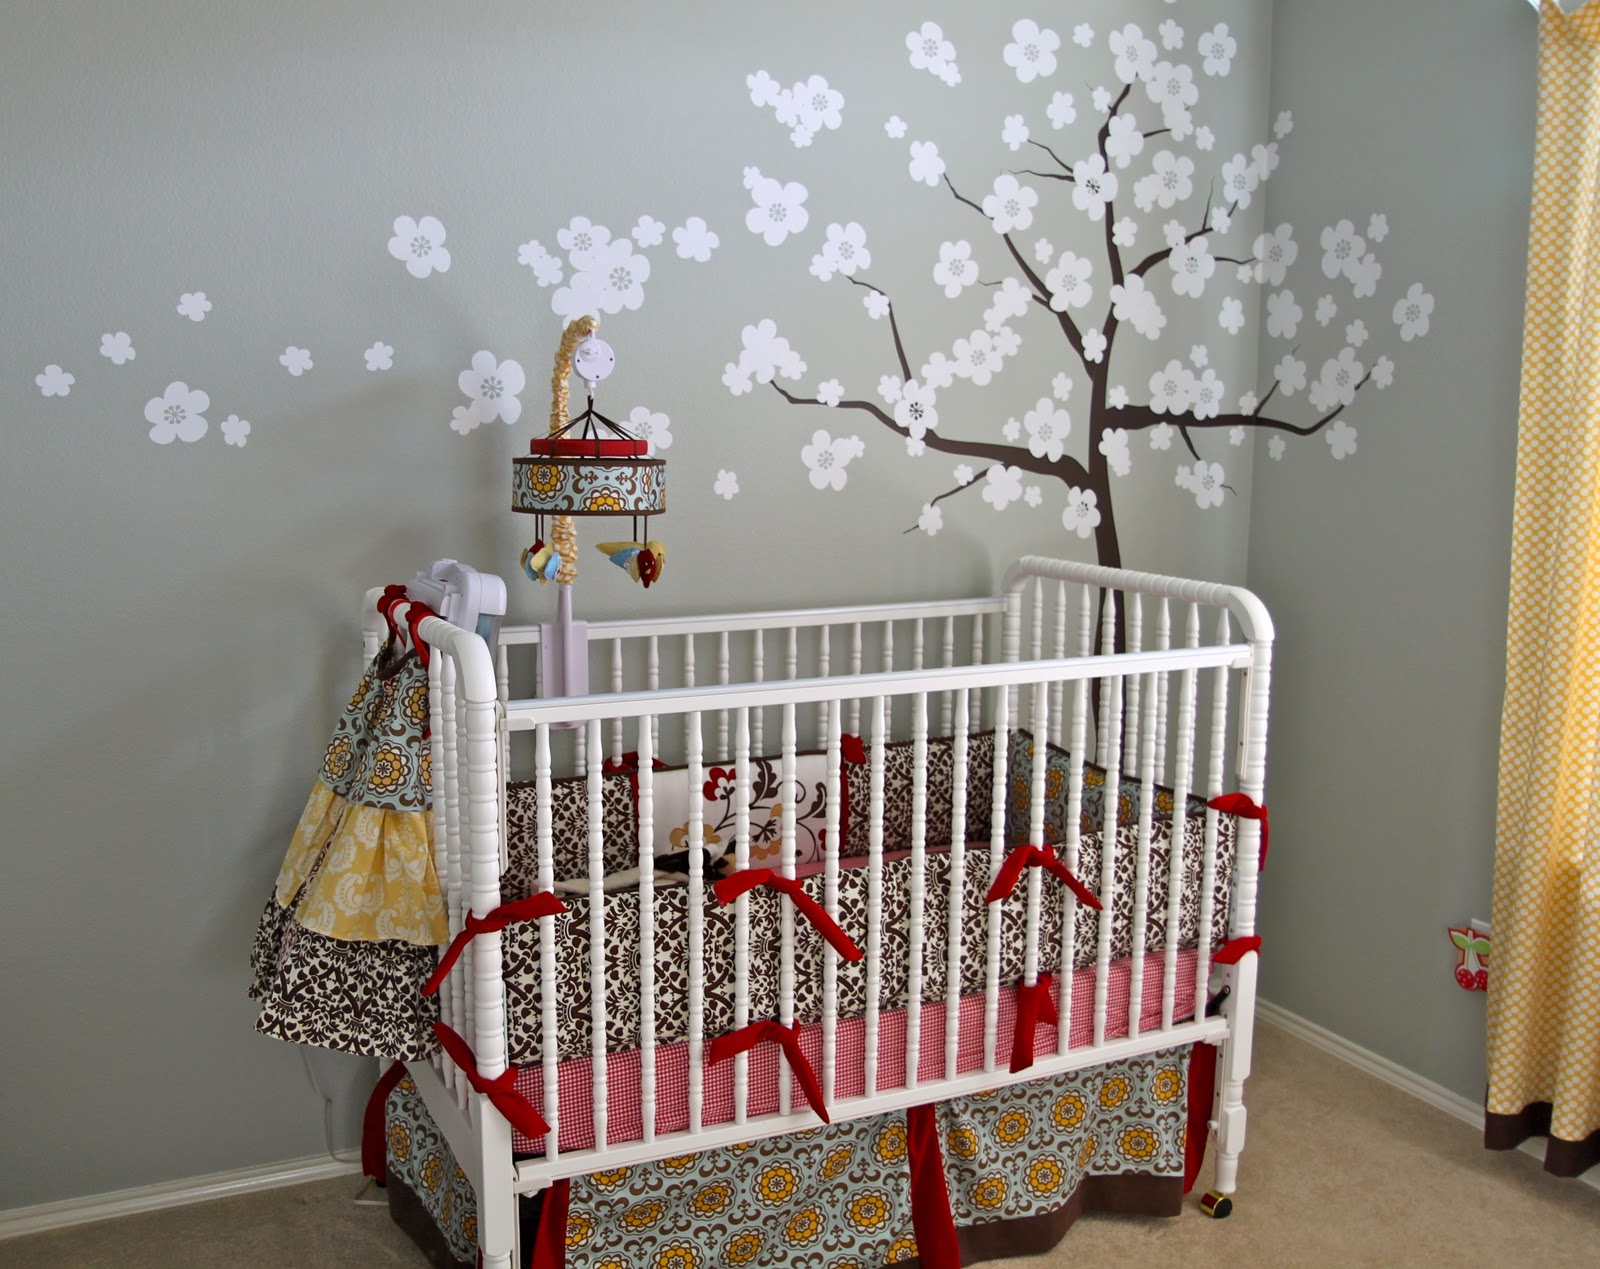 Baby nursery it 39 s quirky and so cute design dazzle for Baby room decorating ideas uk